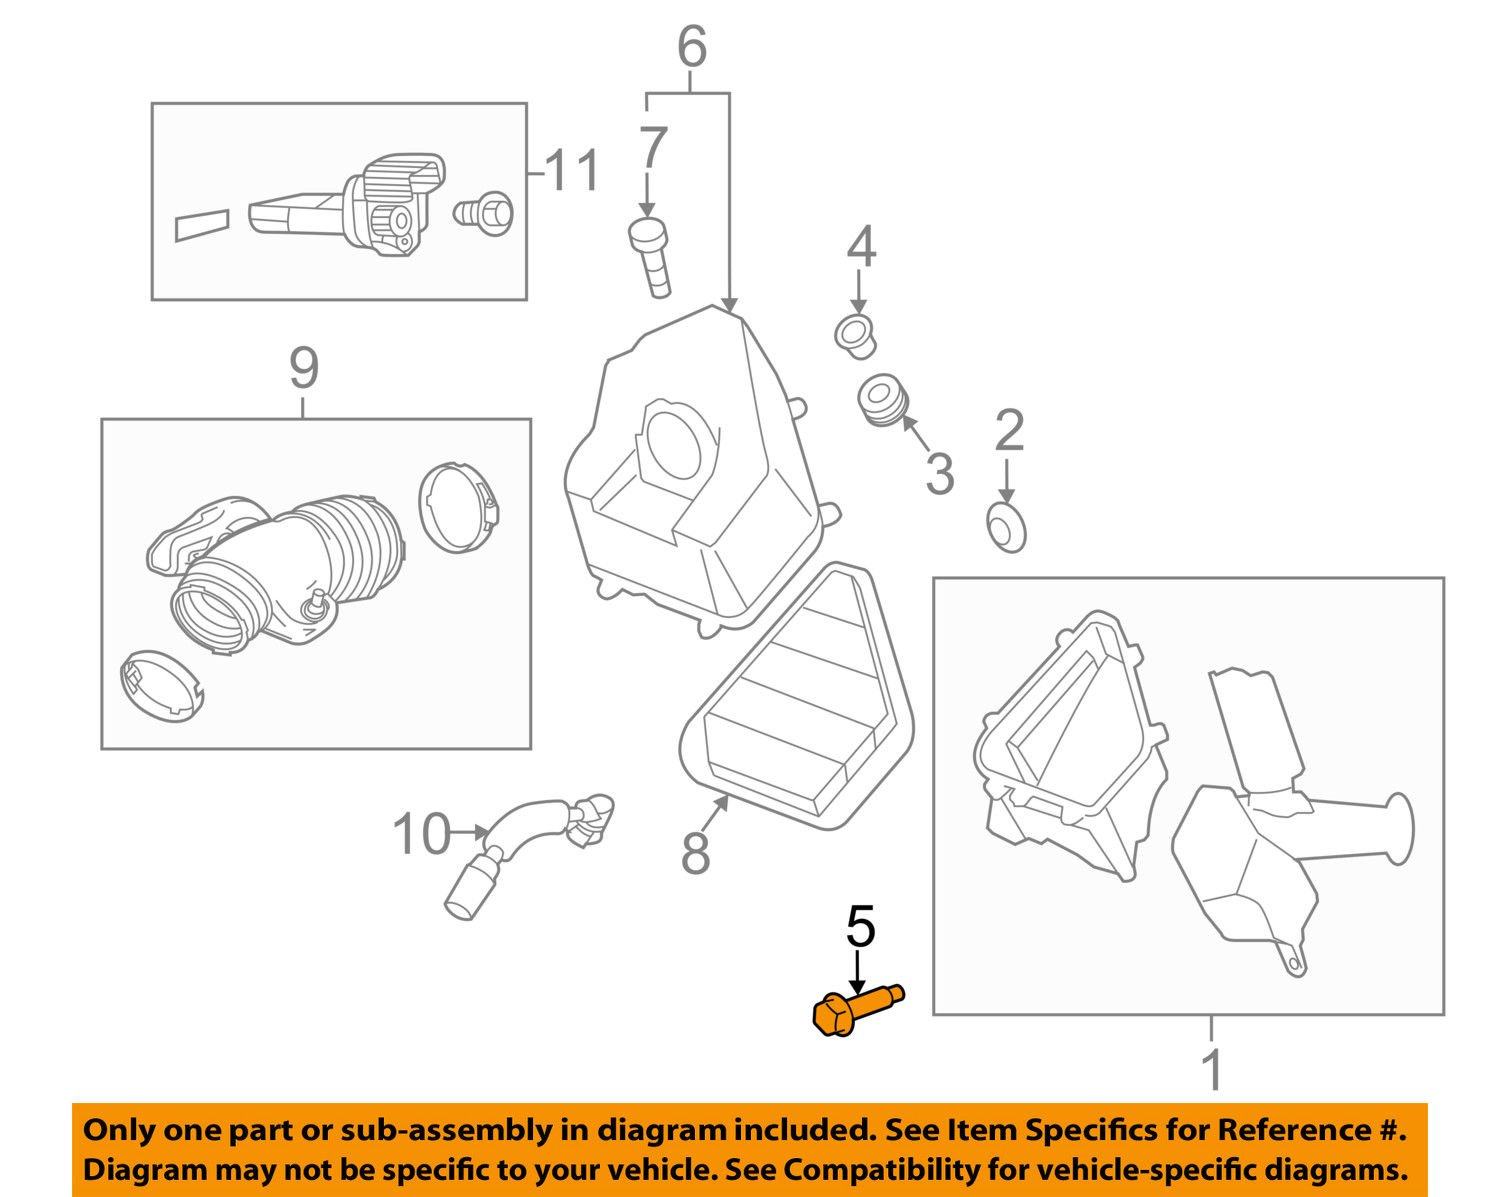 Genuine GM Bolt Part# - 11570295 General Motors